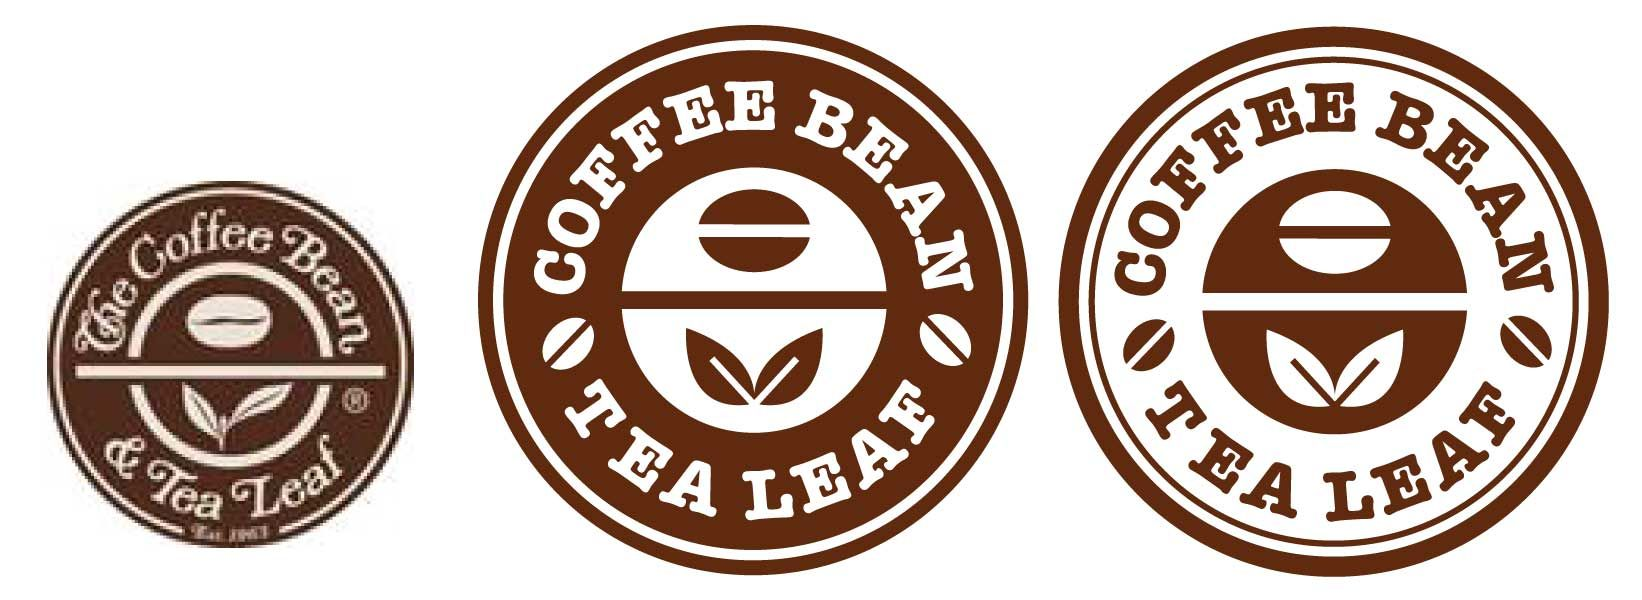 I always thought Coffee Bean's logo was kinda bland and